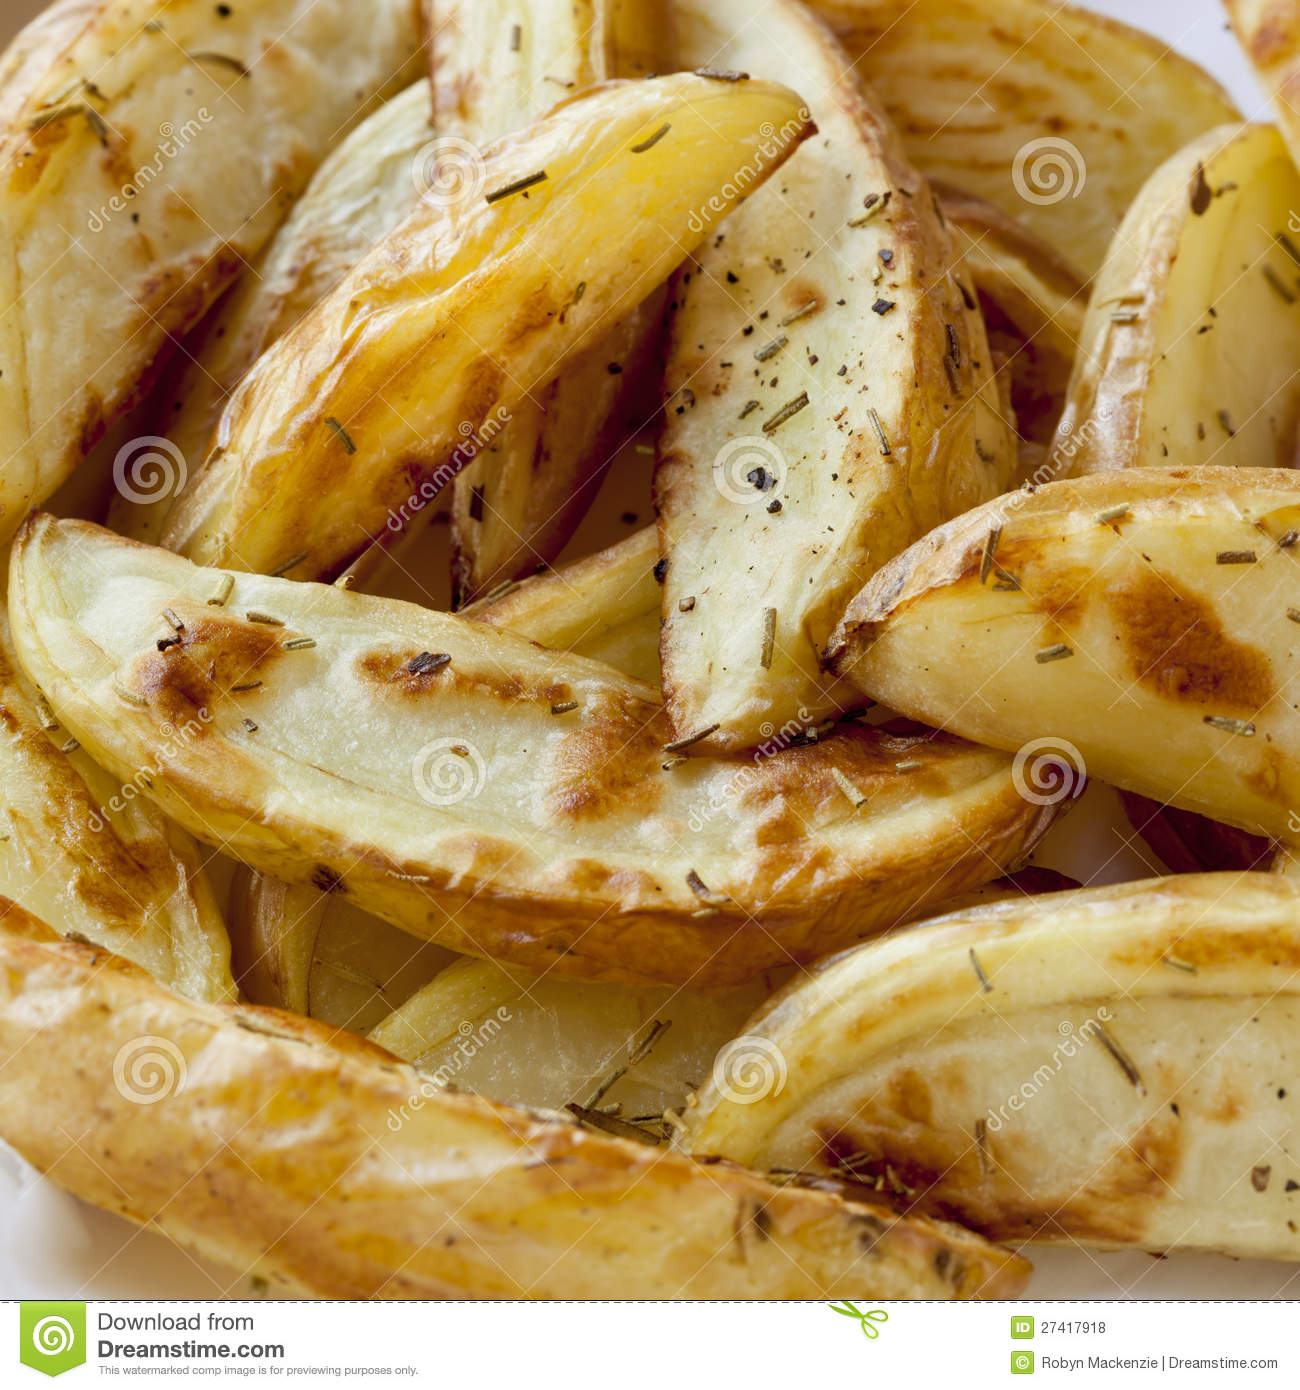 Oven Baked Potato Wedges Royalty Free Stock Photos - Image: 27417918